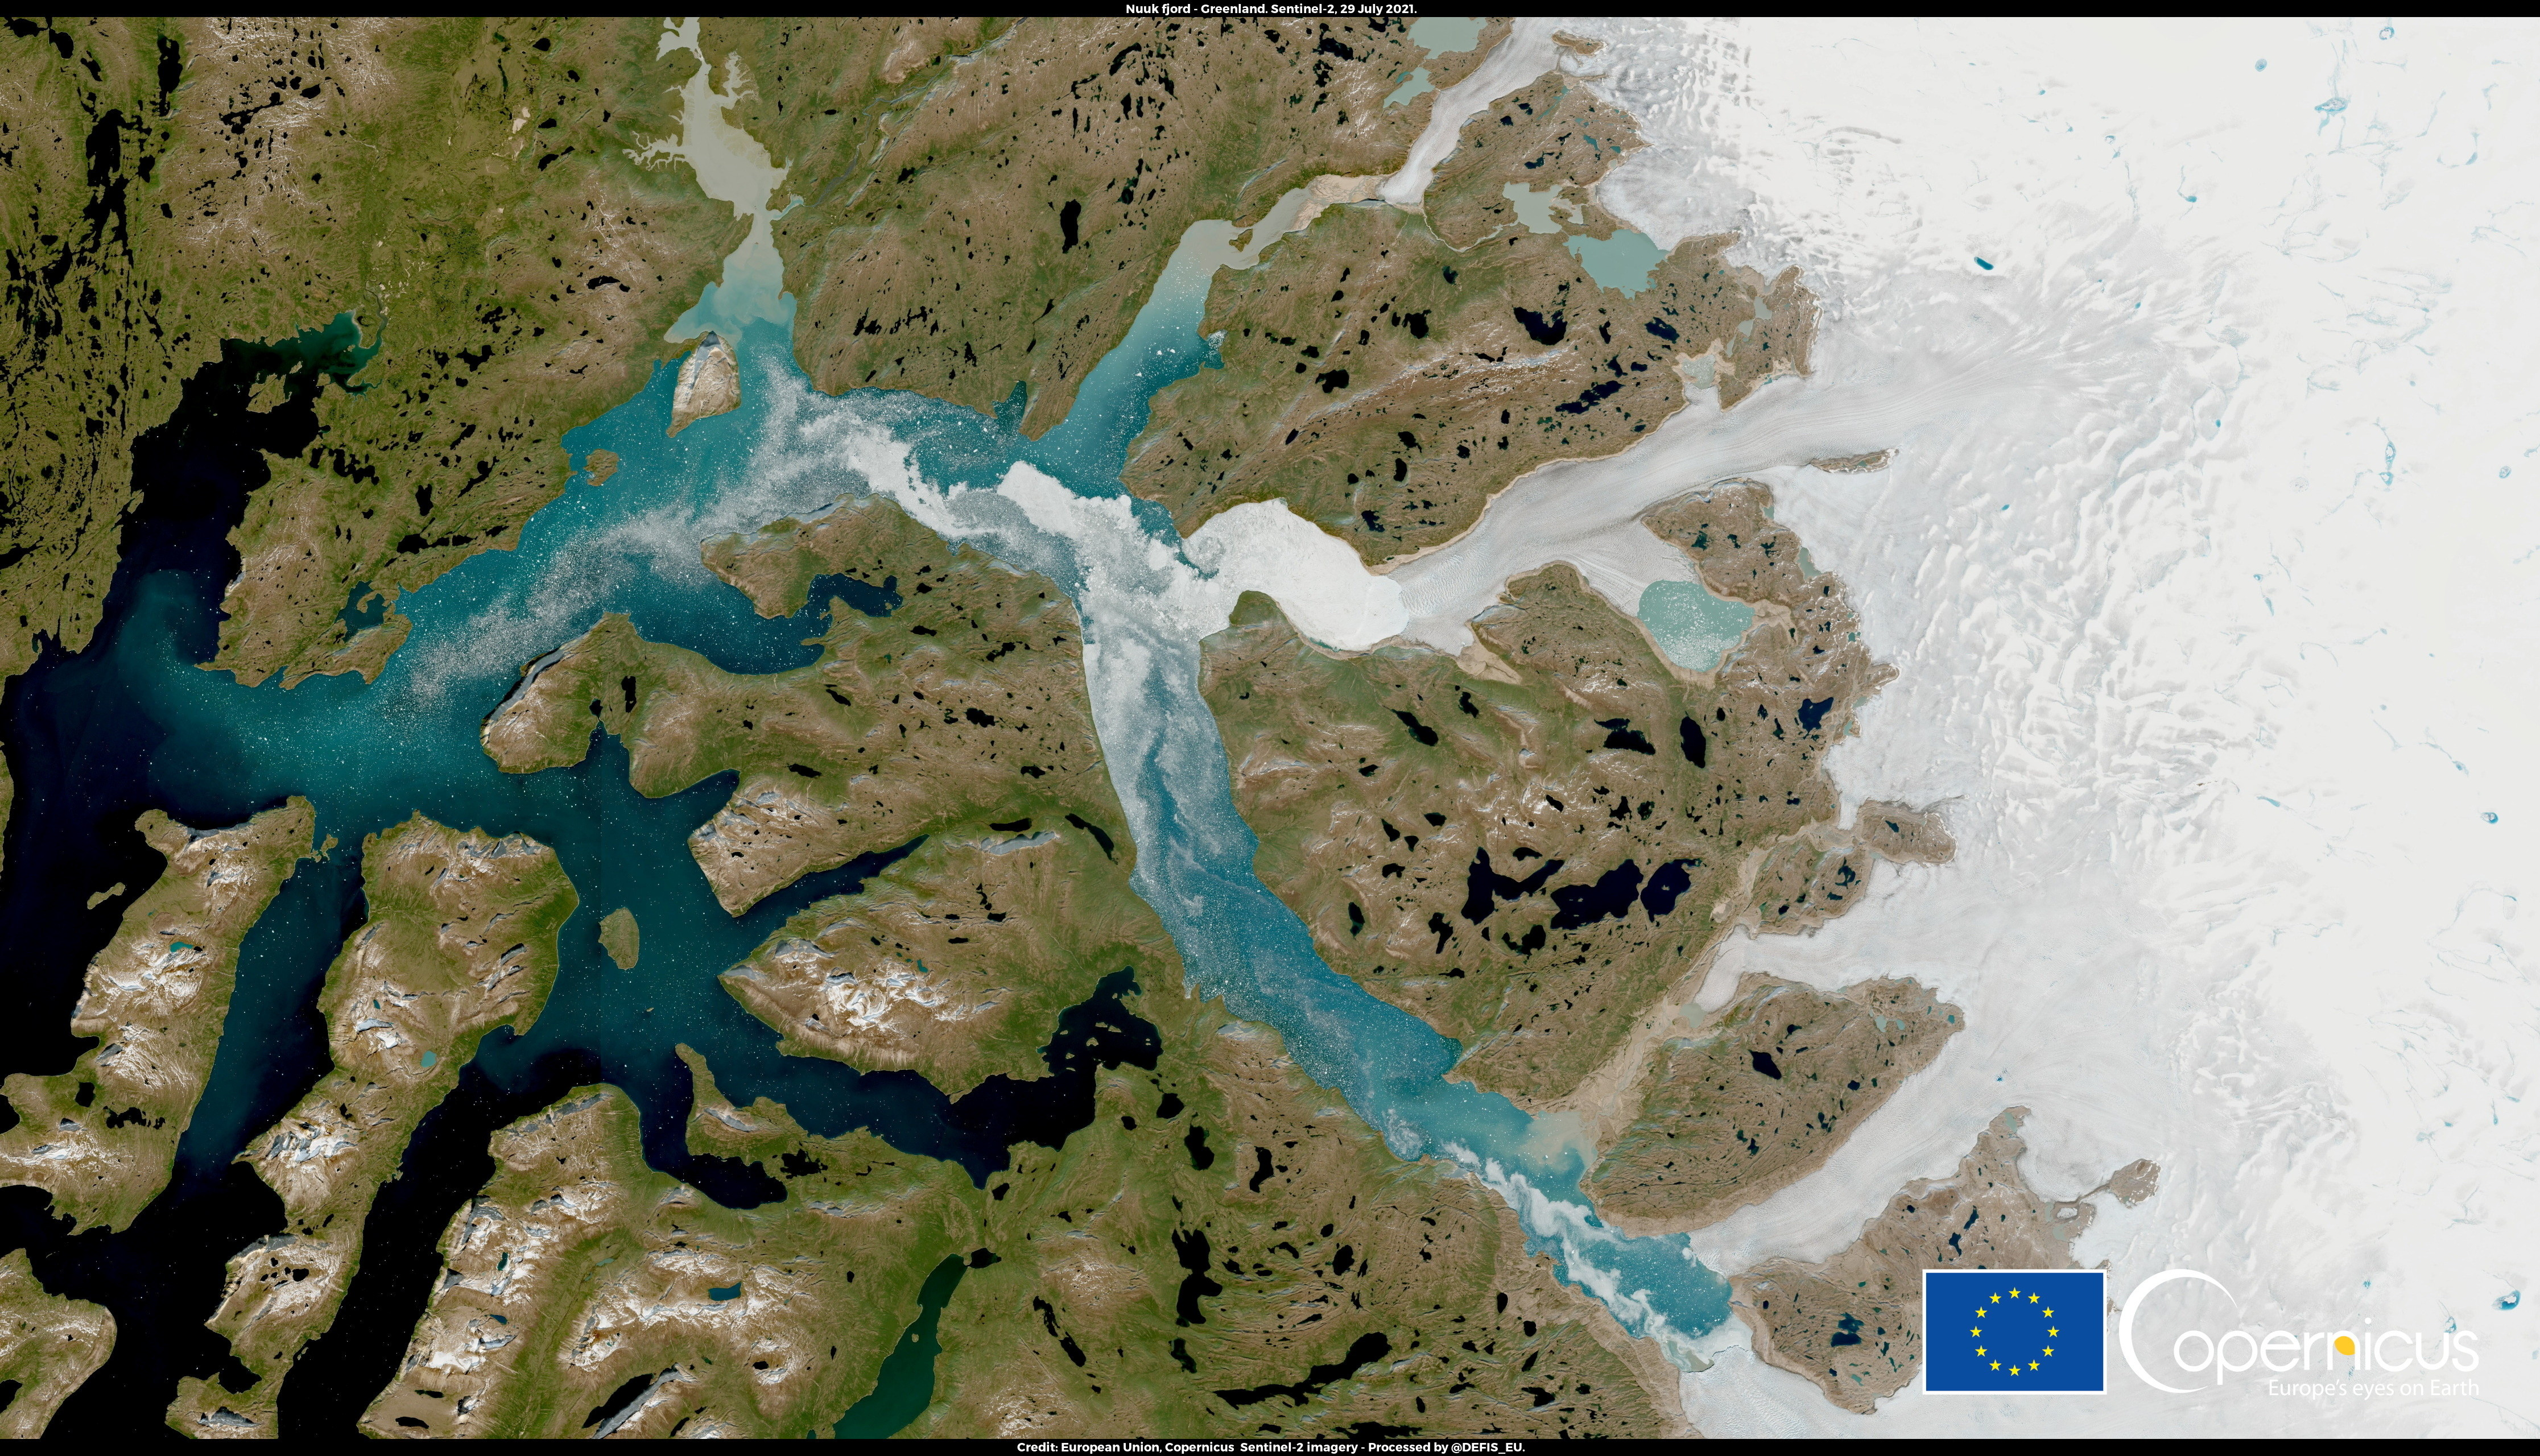 This is a satellite image of part of Greenland, the world's biggest island.